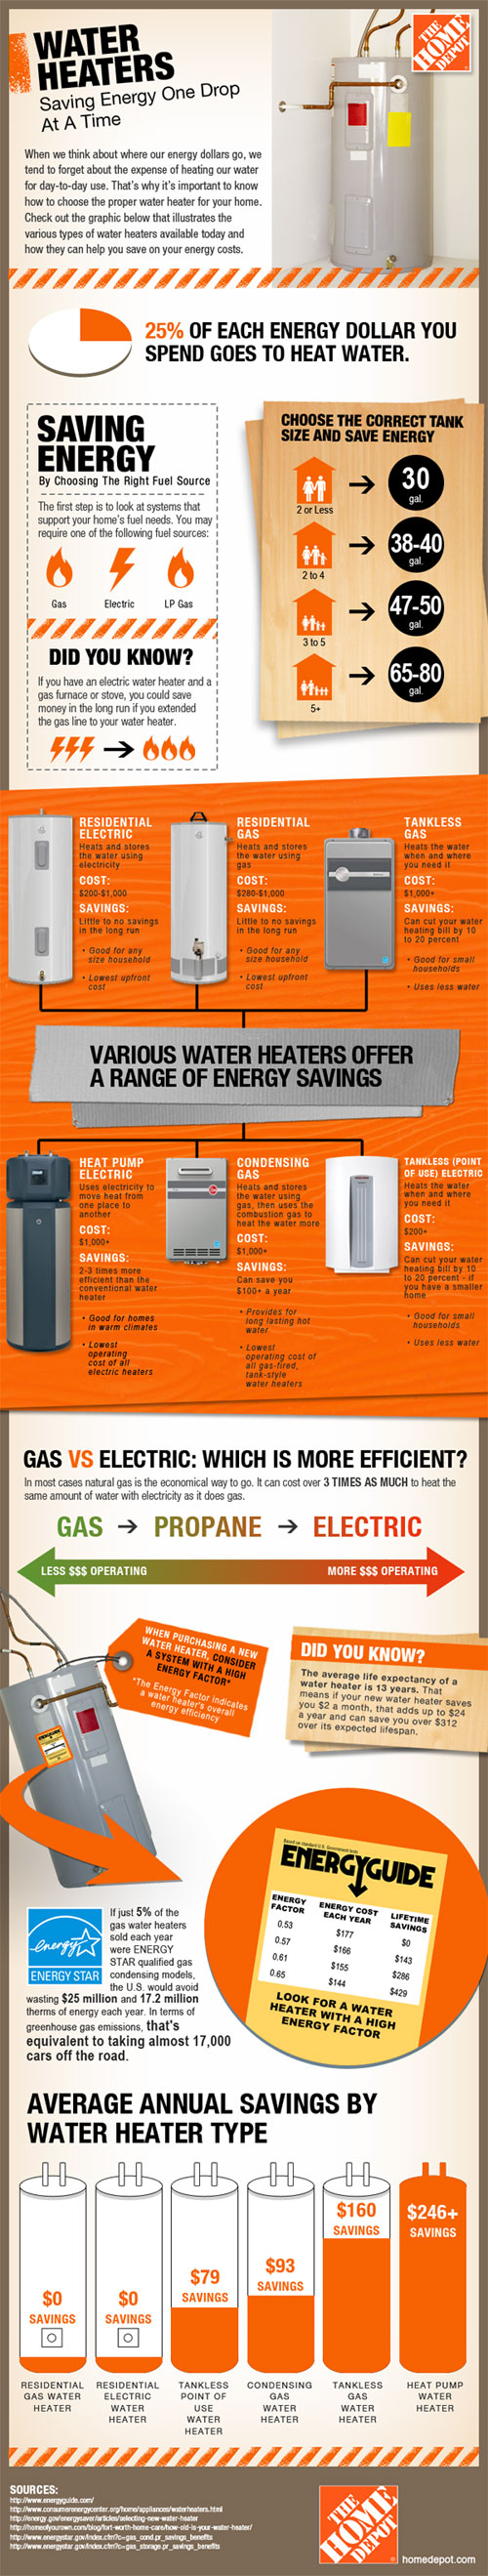 energy_saving_water_heater_infographic